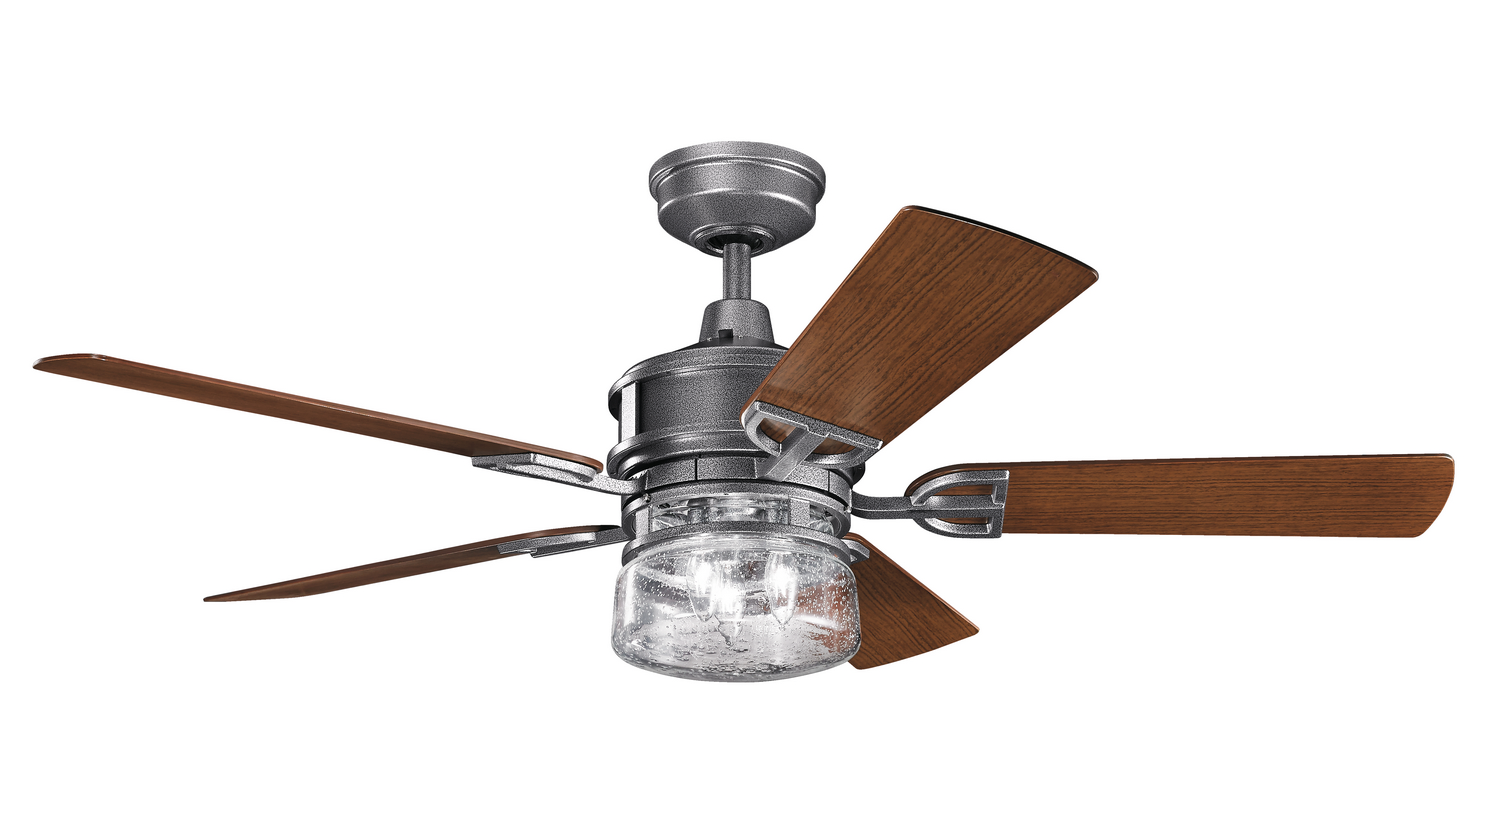 52 inchCeiling Fan from the Patio collection by Kichler 310139WSP